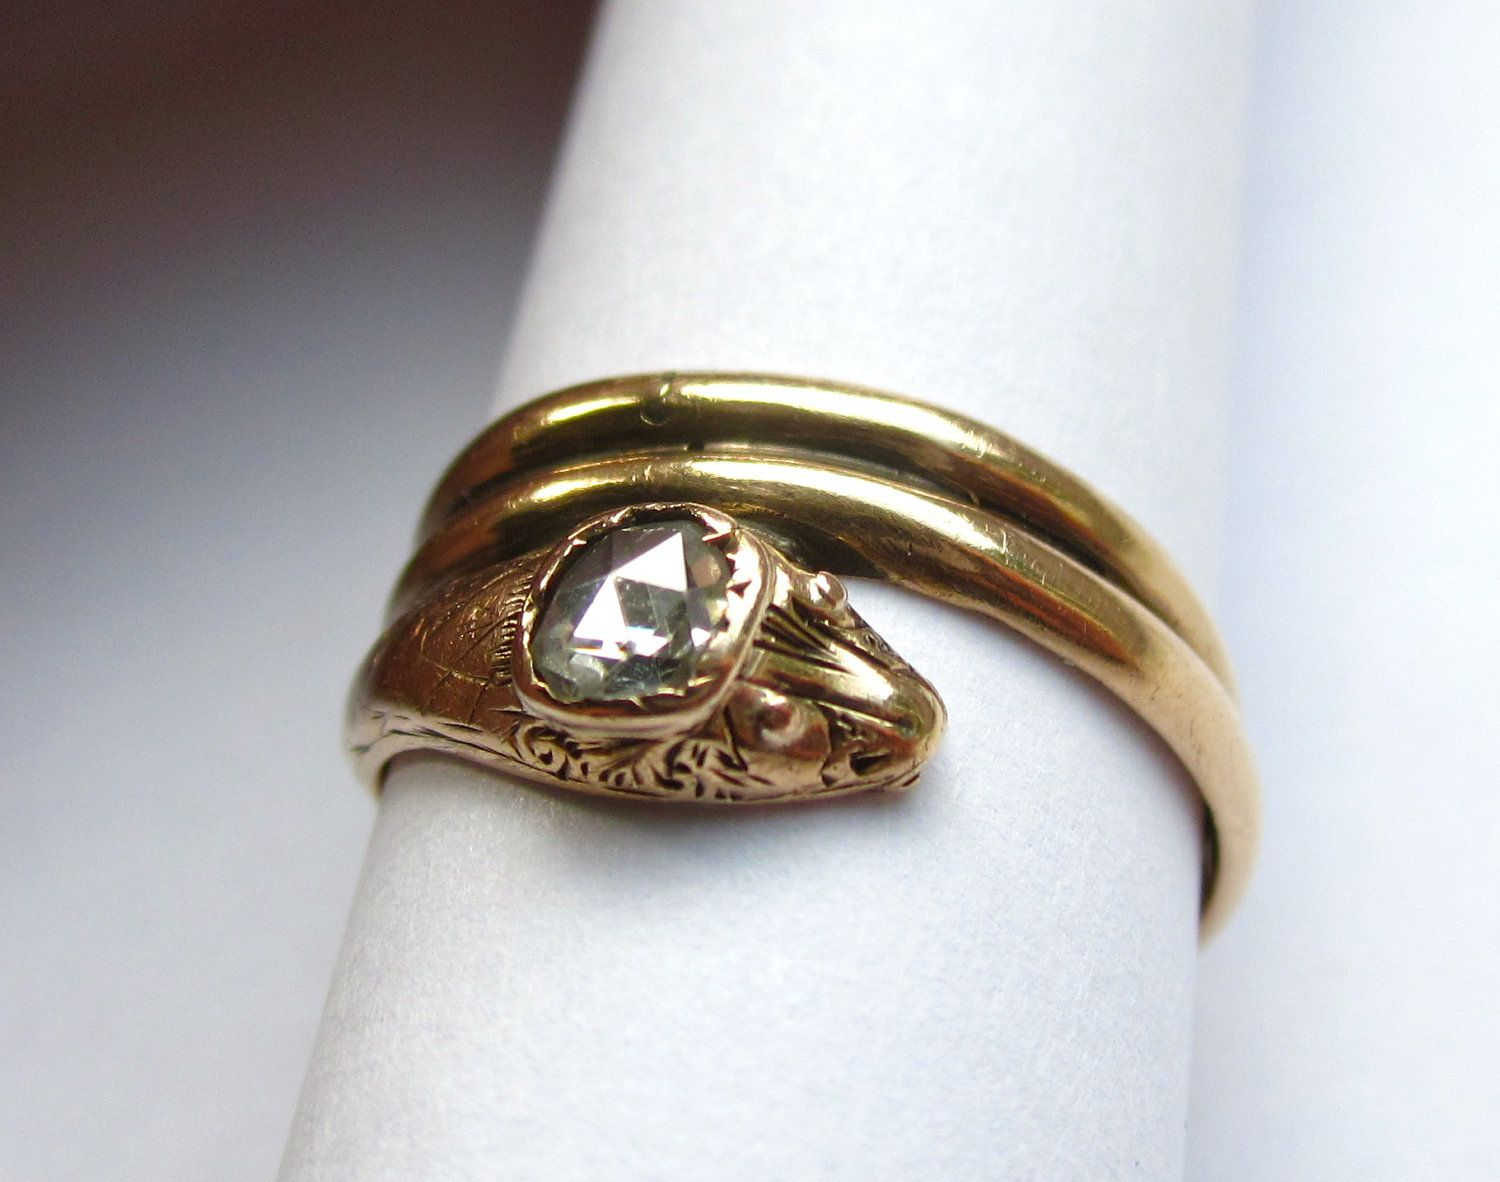 Antique Early Victorian Snake Serpent 33 Carat Diamond Engagement Ring 989 00 Via Etsy